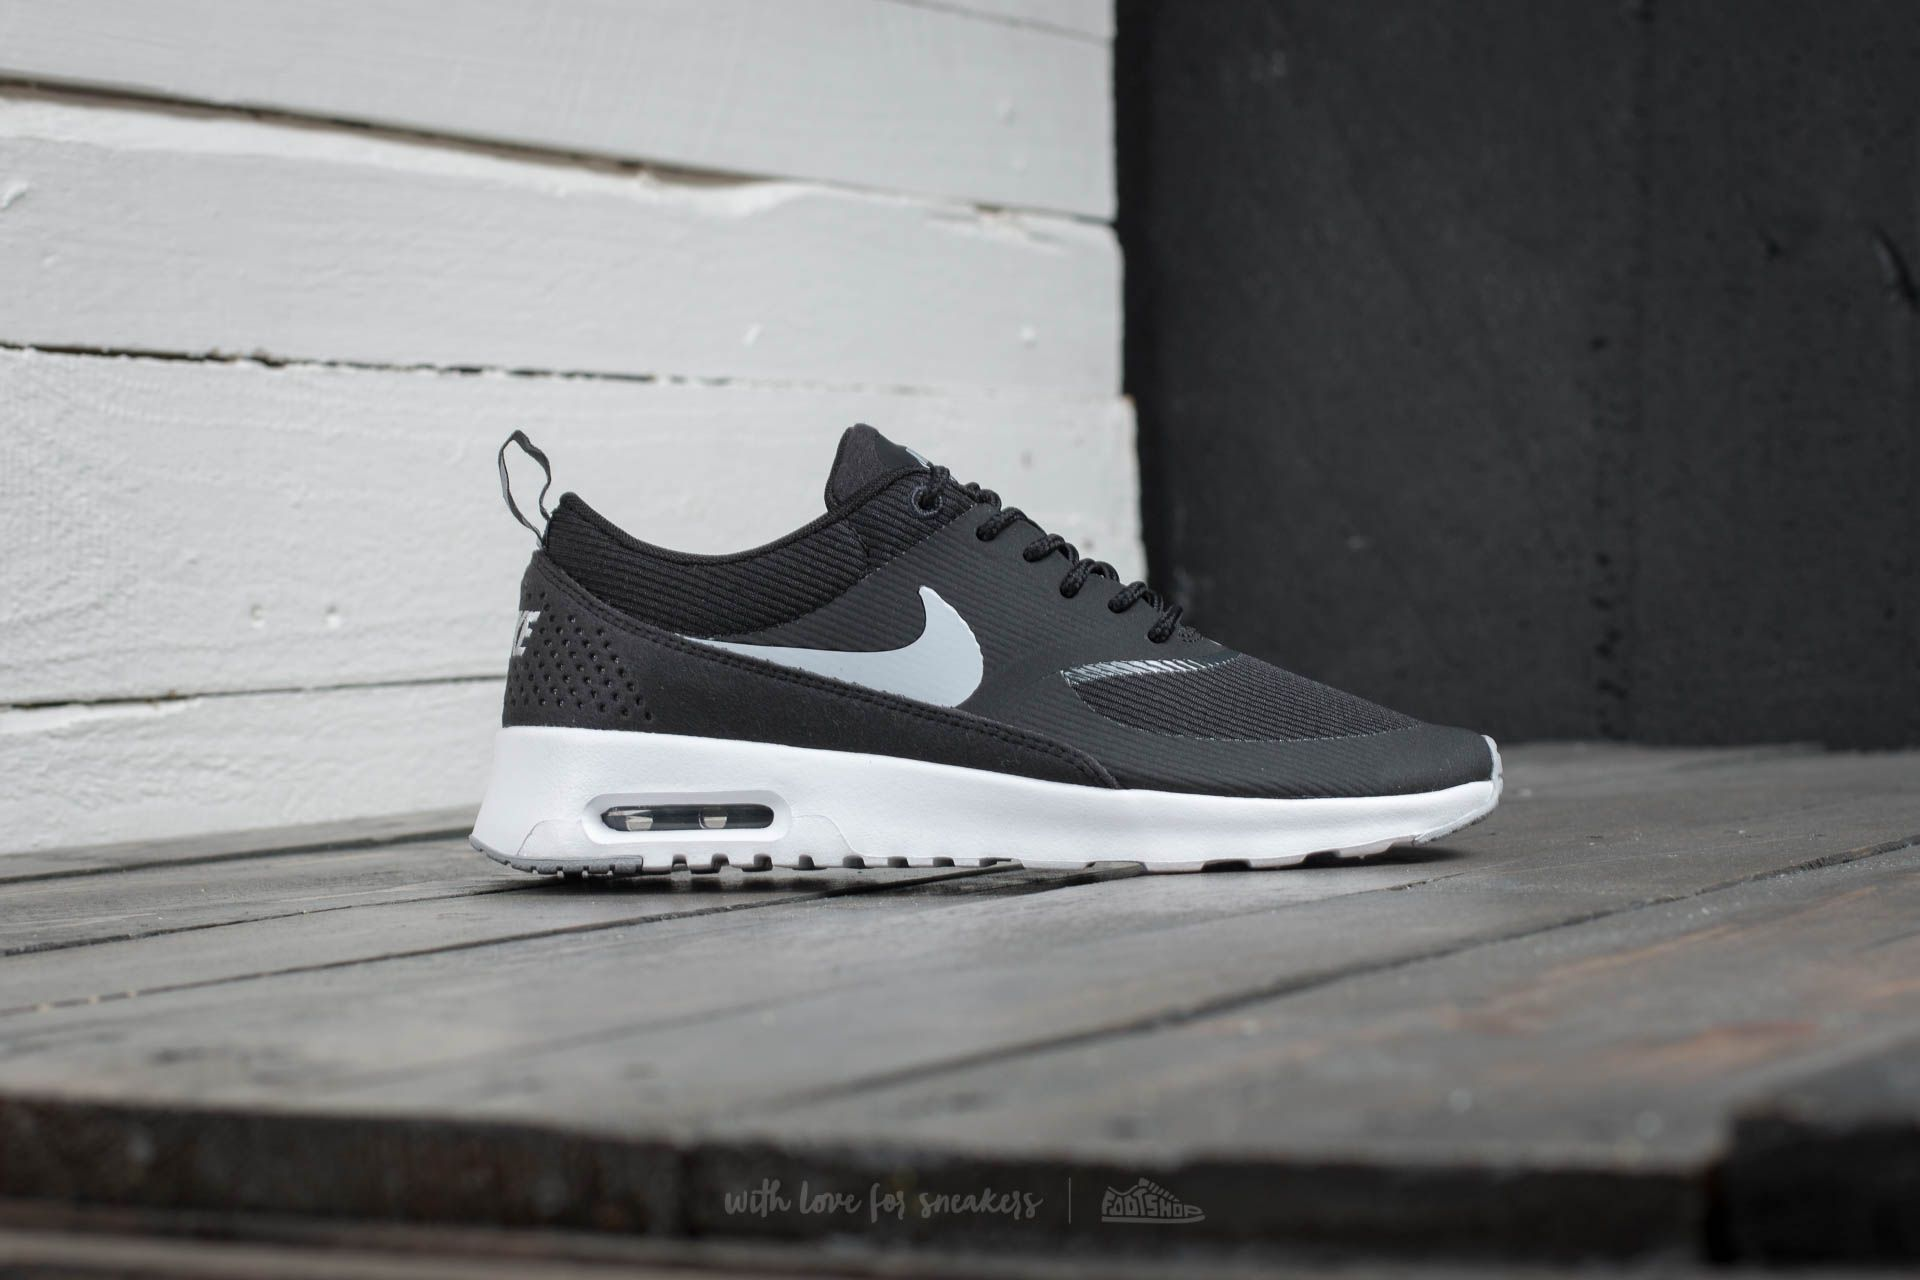 Nike Gray Wmns Air Max Thea Black Wolf Grey Anthracite White